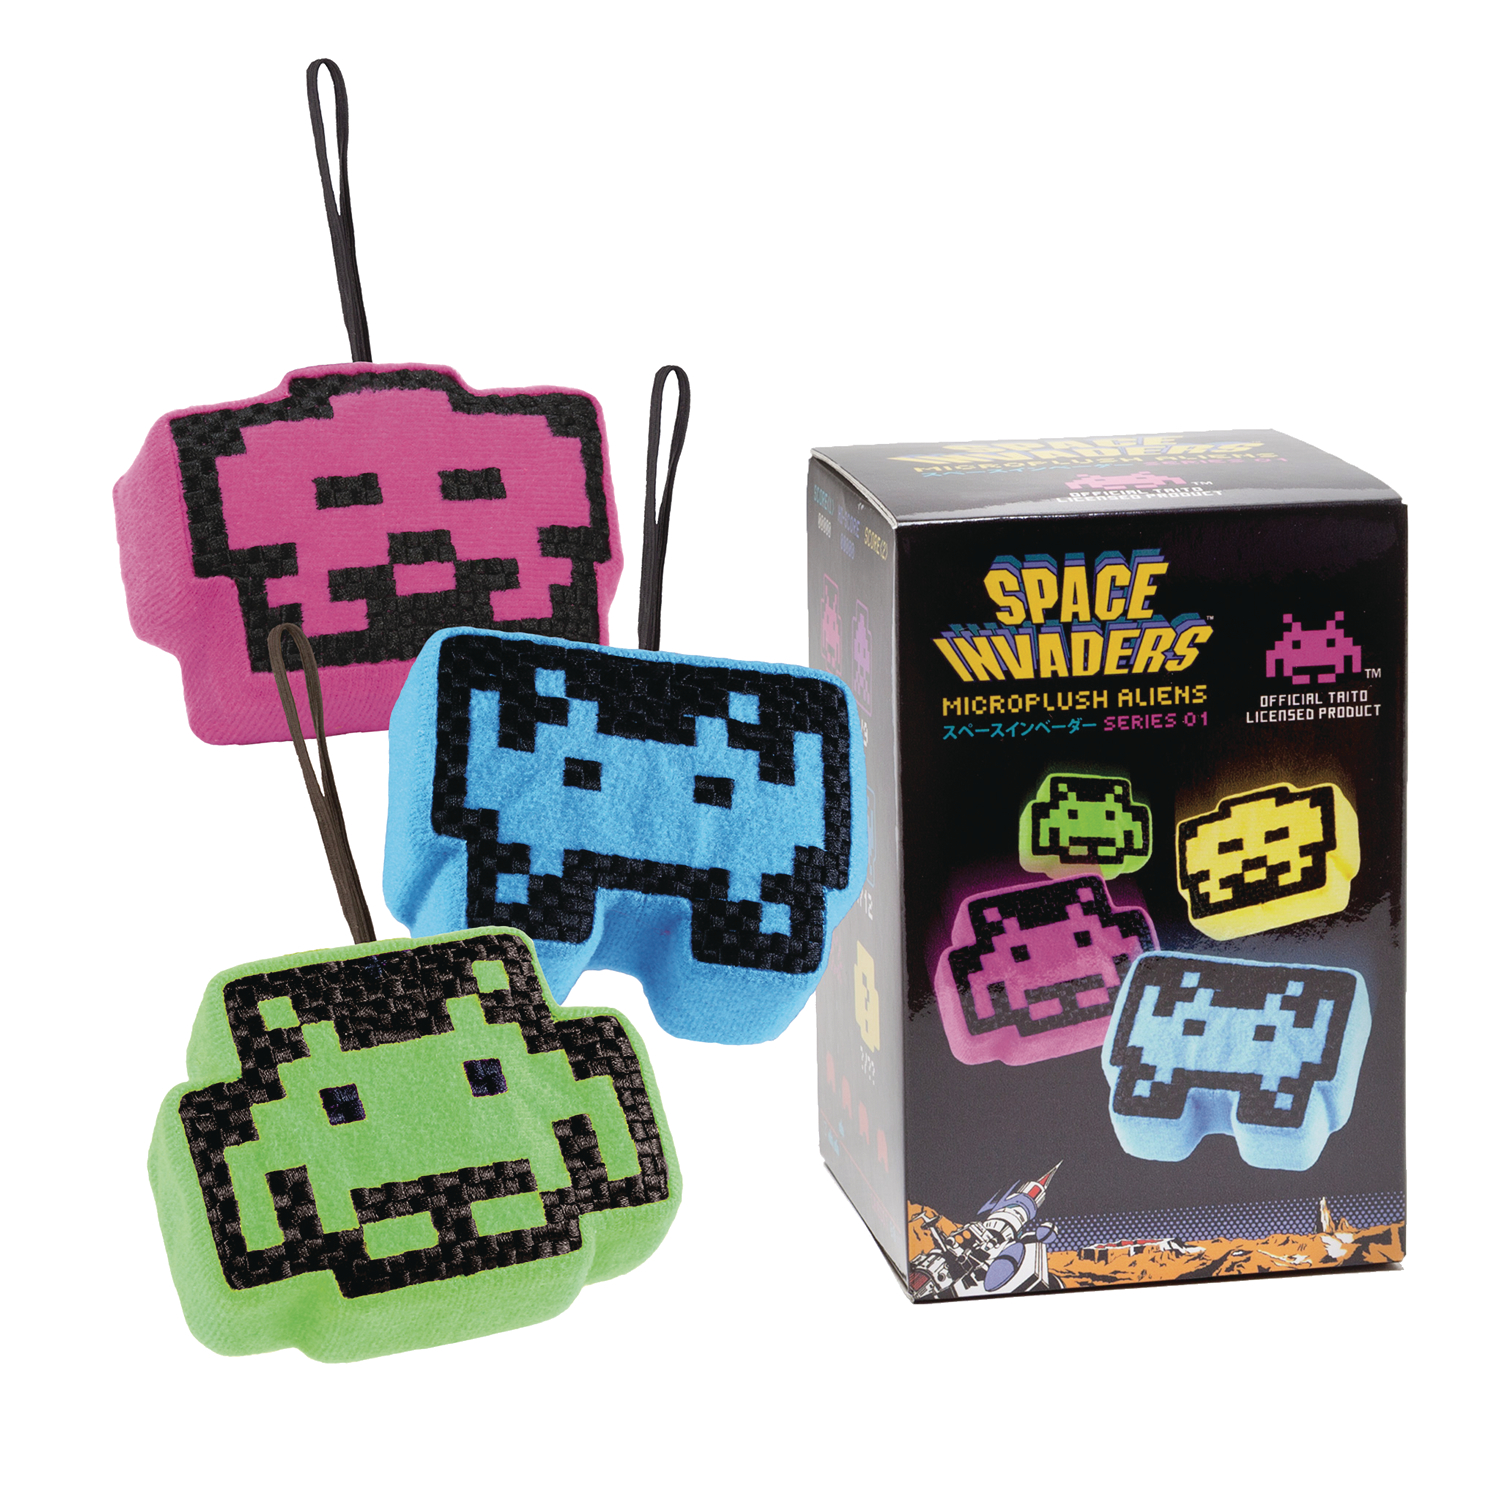 SPACE INVADERS MICROPLUSH BMB DIS